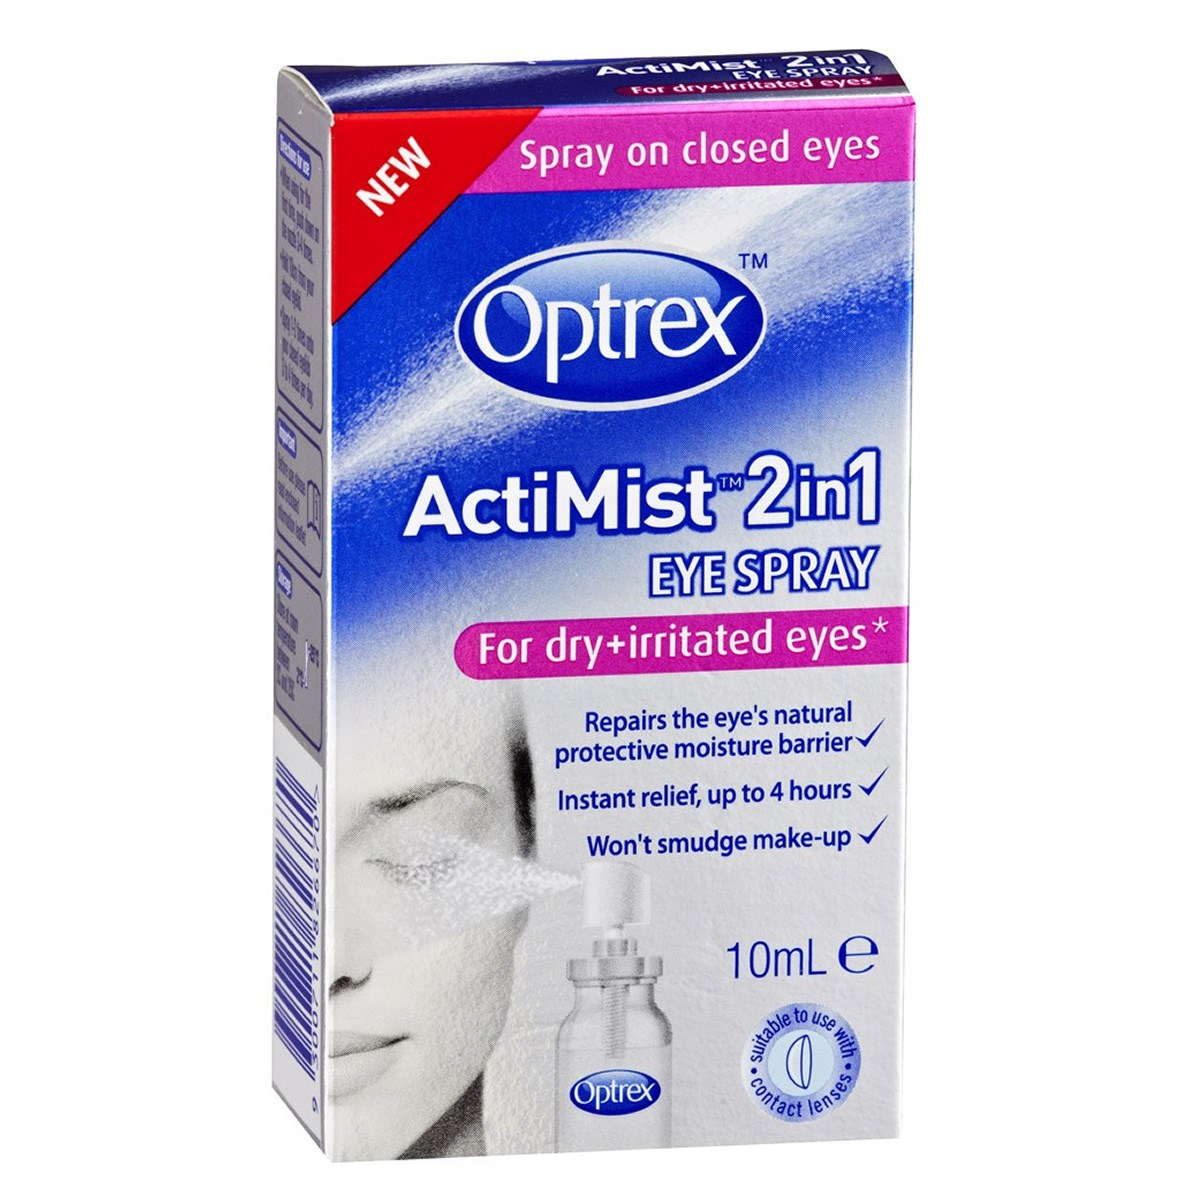 Optrex ActiMist 2in1 Eye Spray - Dry and Irritated Eyes